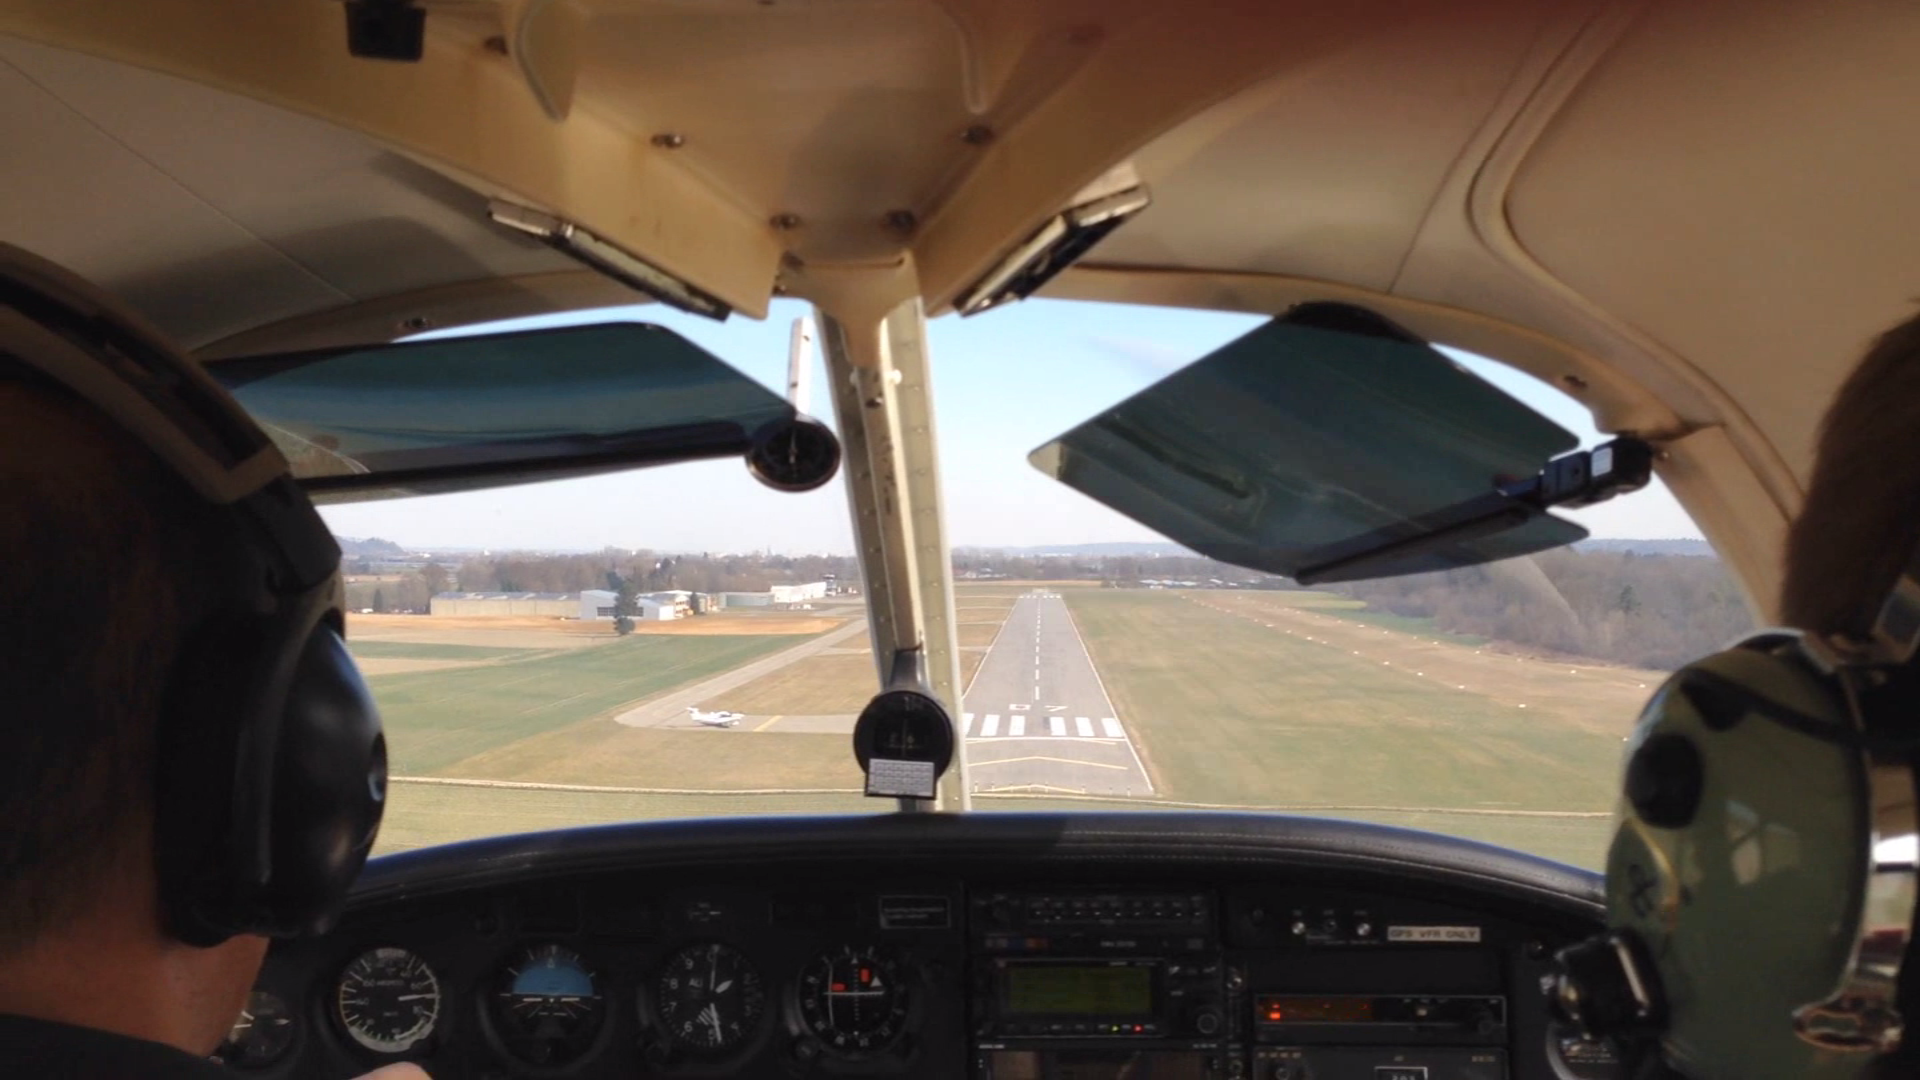 Landing approach at the end of a test flight.